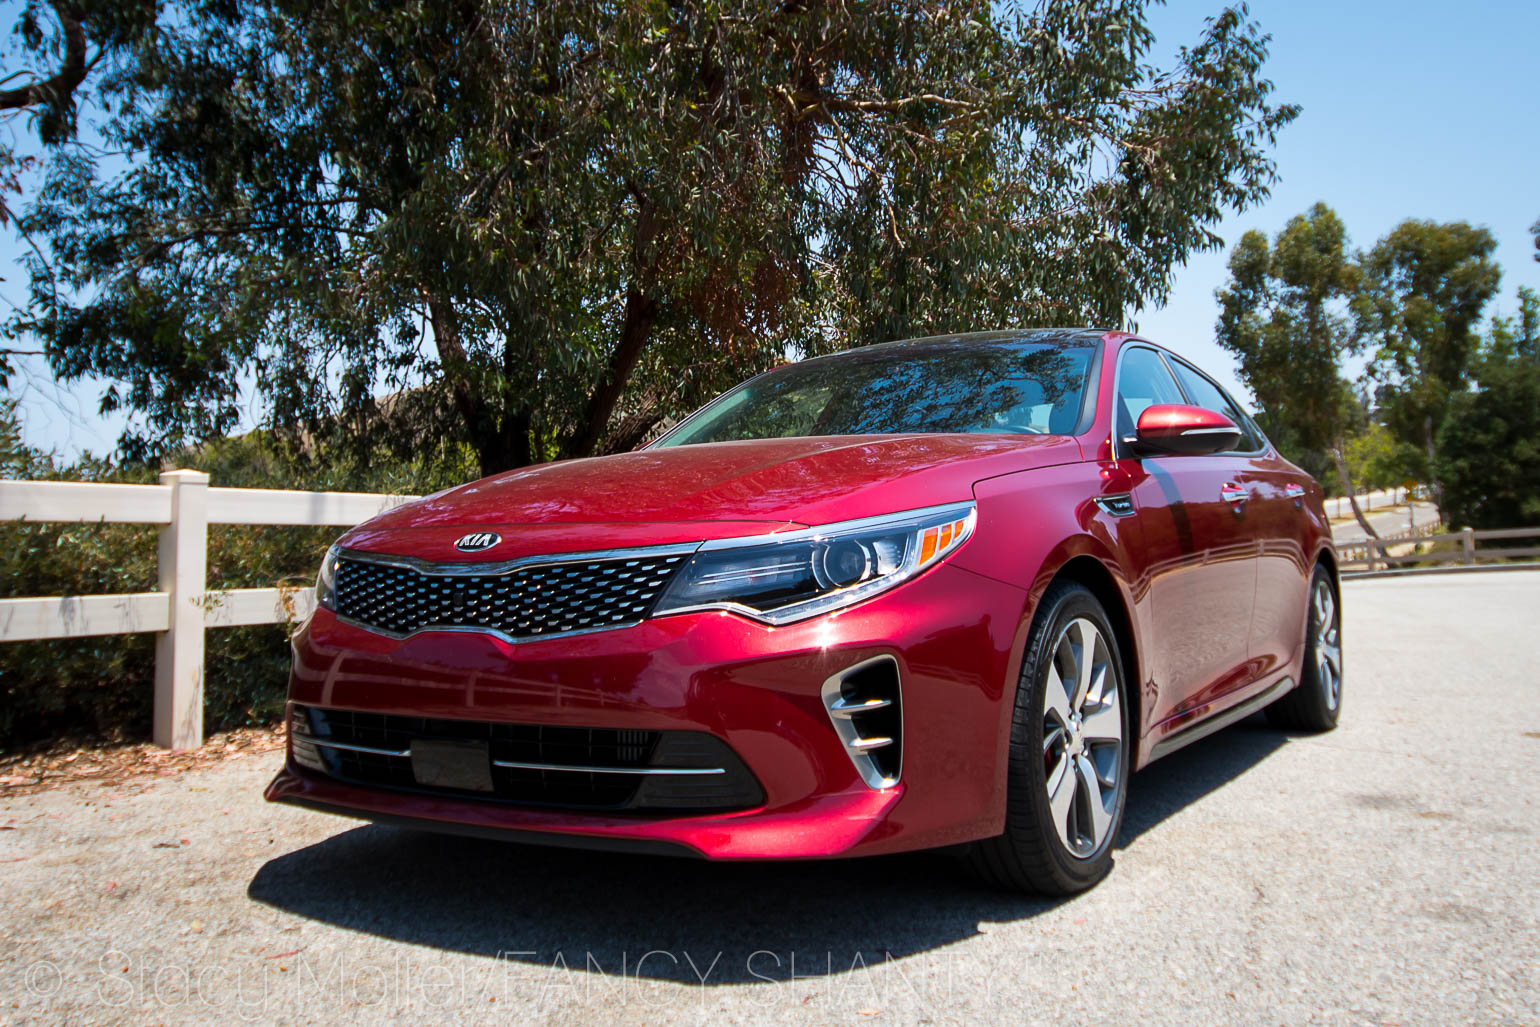 2016 kia optima sx turbo review fancy shanty. Black Bedroom Furniture Sets. Home Design Ideas